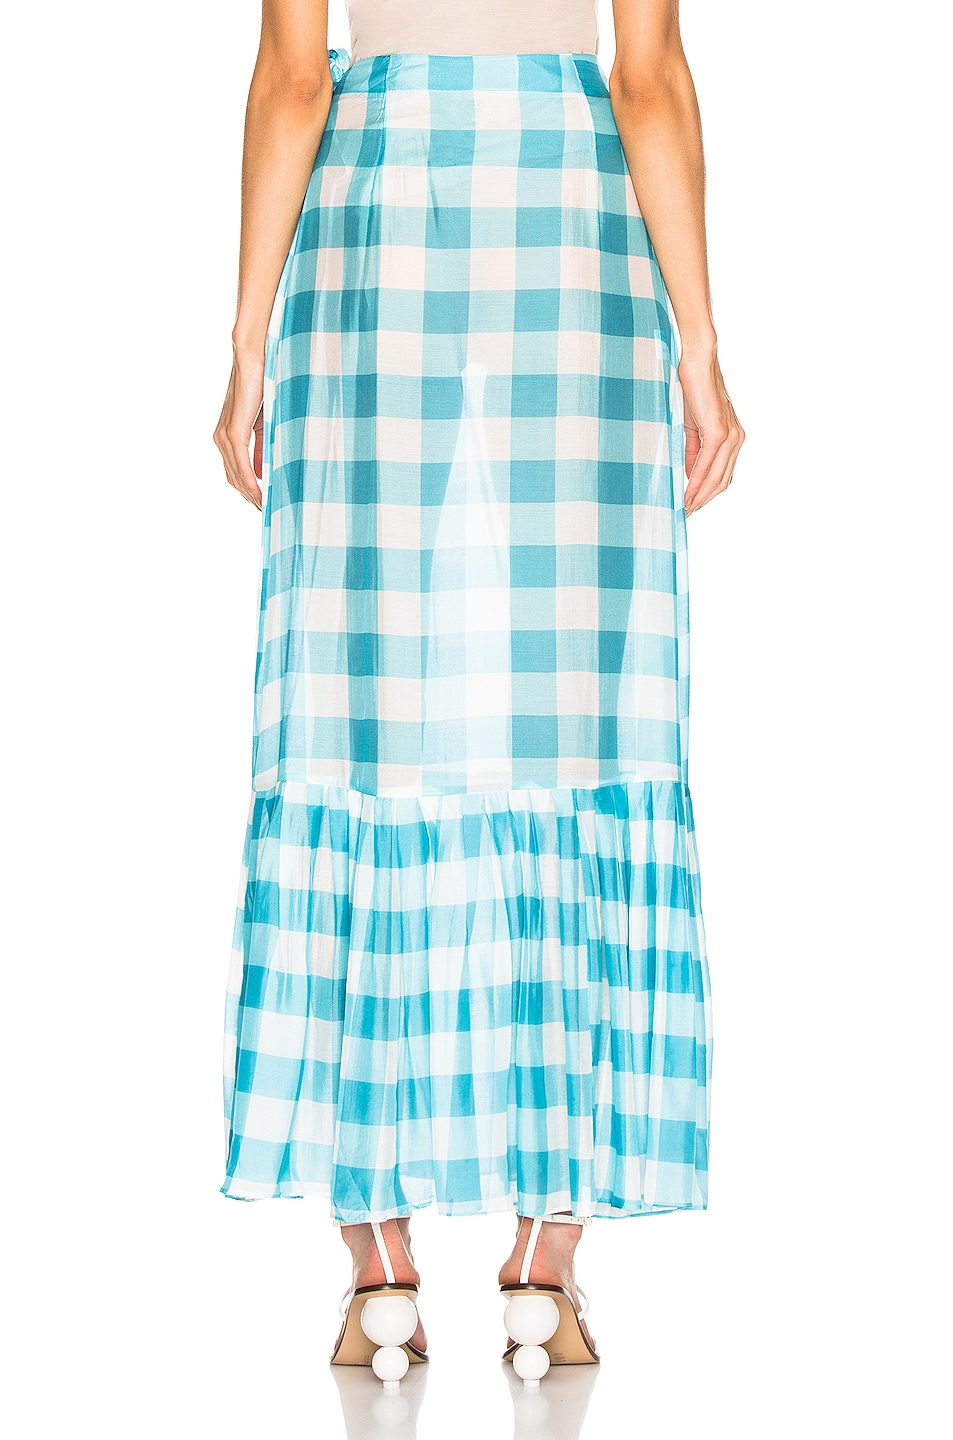 Image 4 of ADRIANA DEGREAS Vichy Long Pleated Skirt in Blue & White